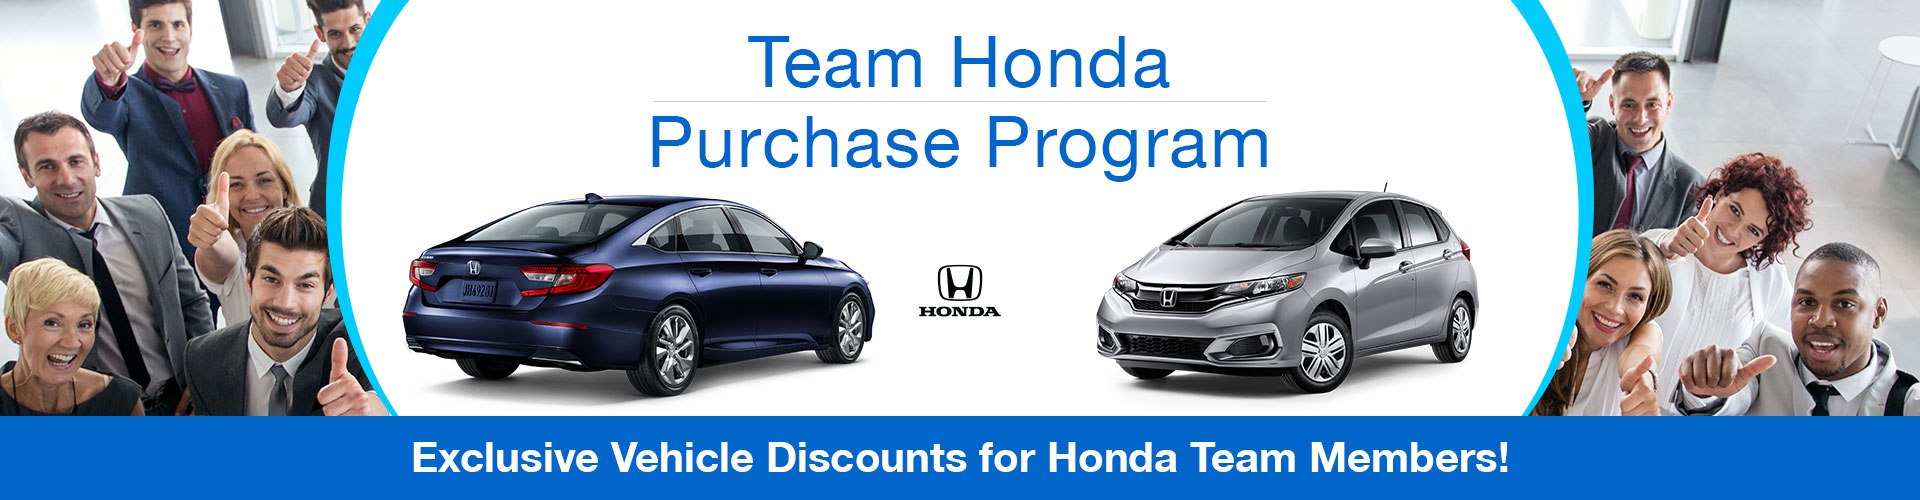 marquee-desktop-Team-Honda